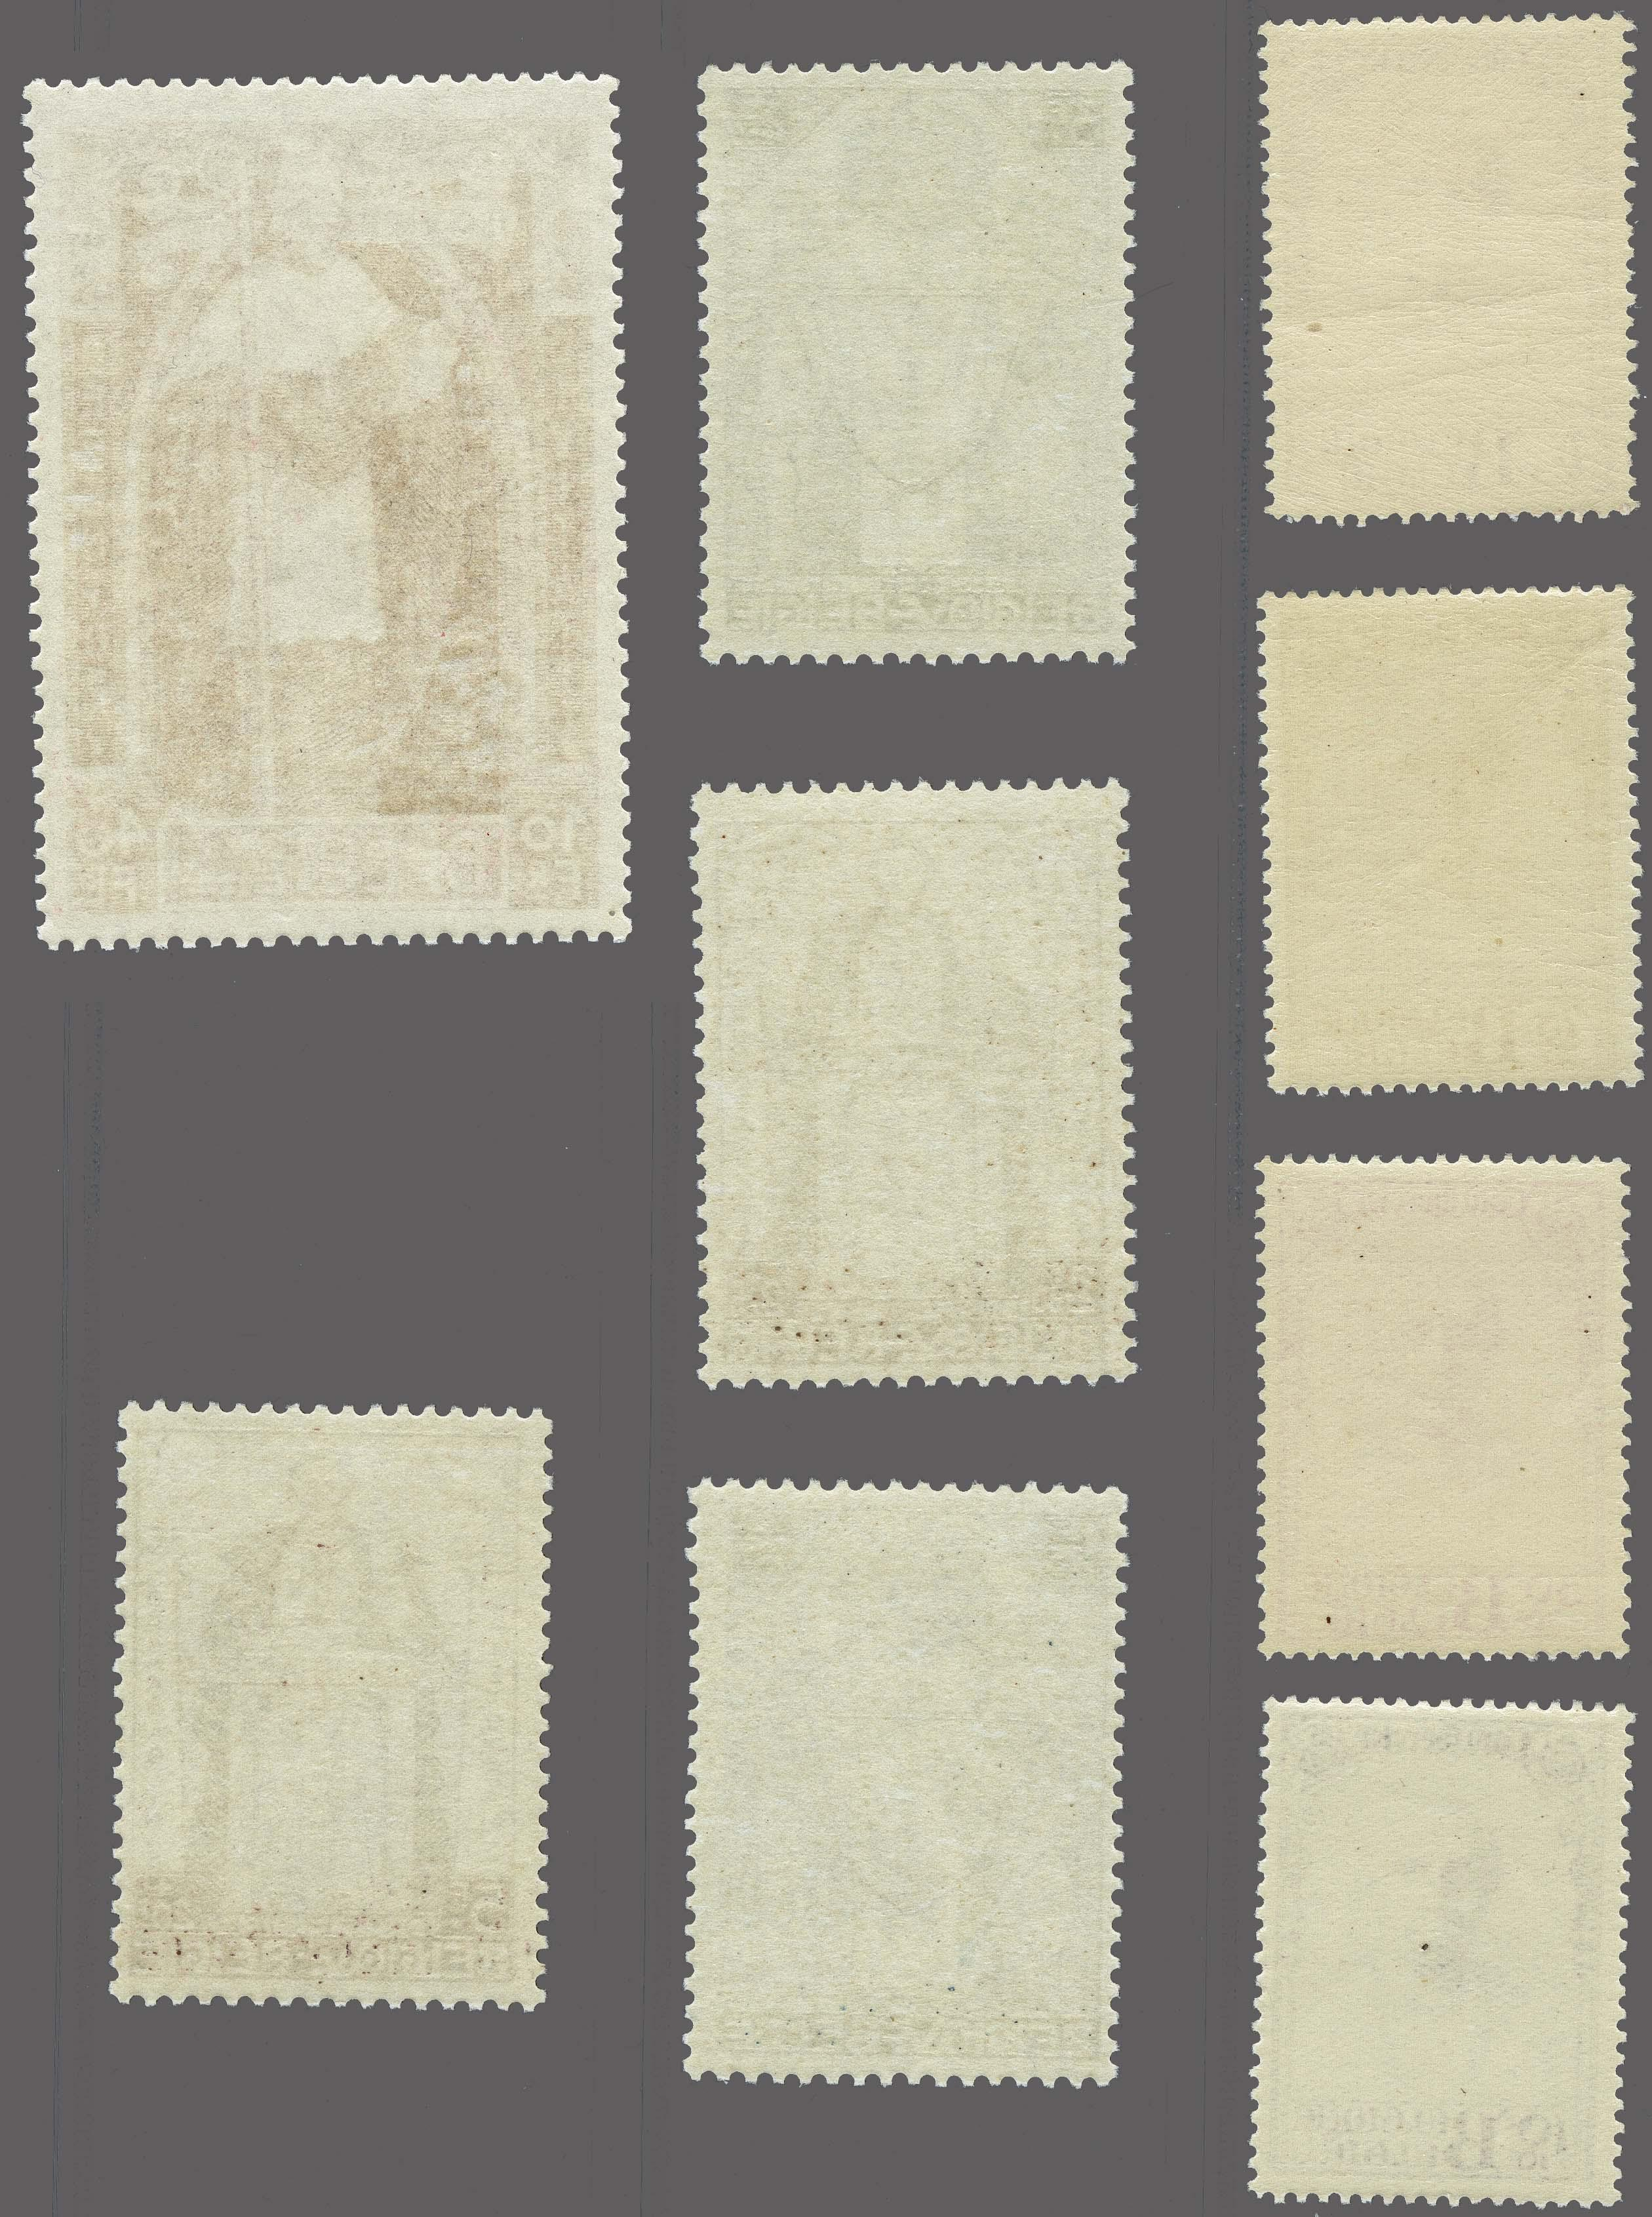 Lot 15 - Belgium and former colonies Belgium -  Corinphila Veilingen Auction 250-253 - Day 1 - Foreign countries